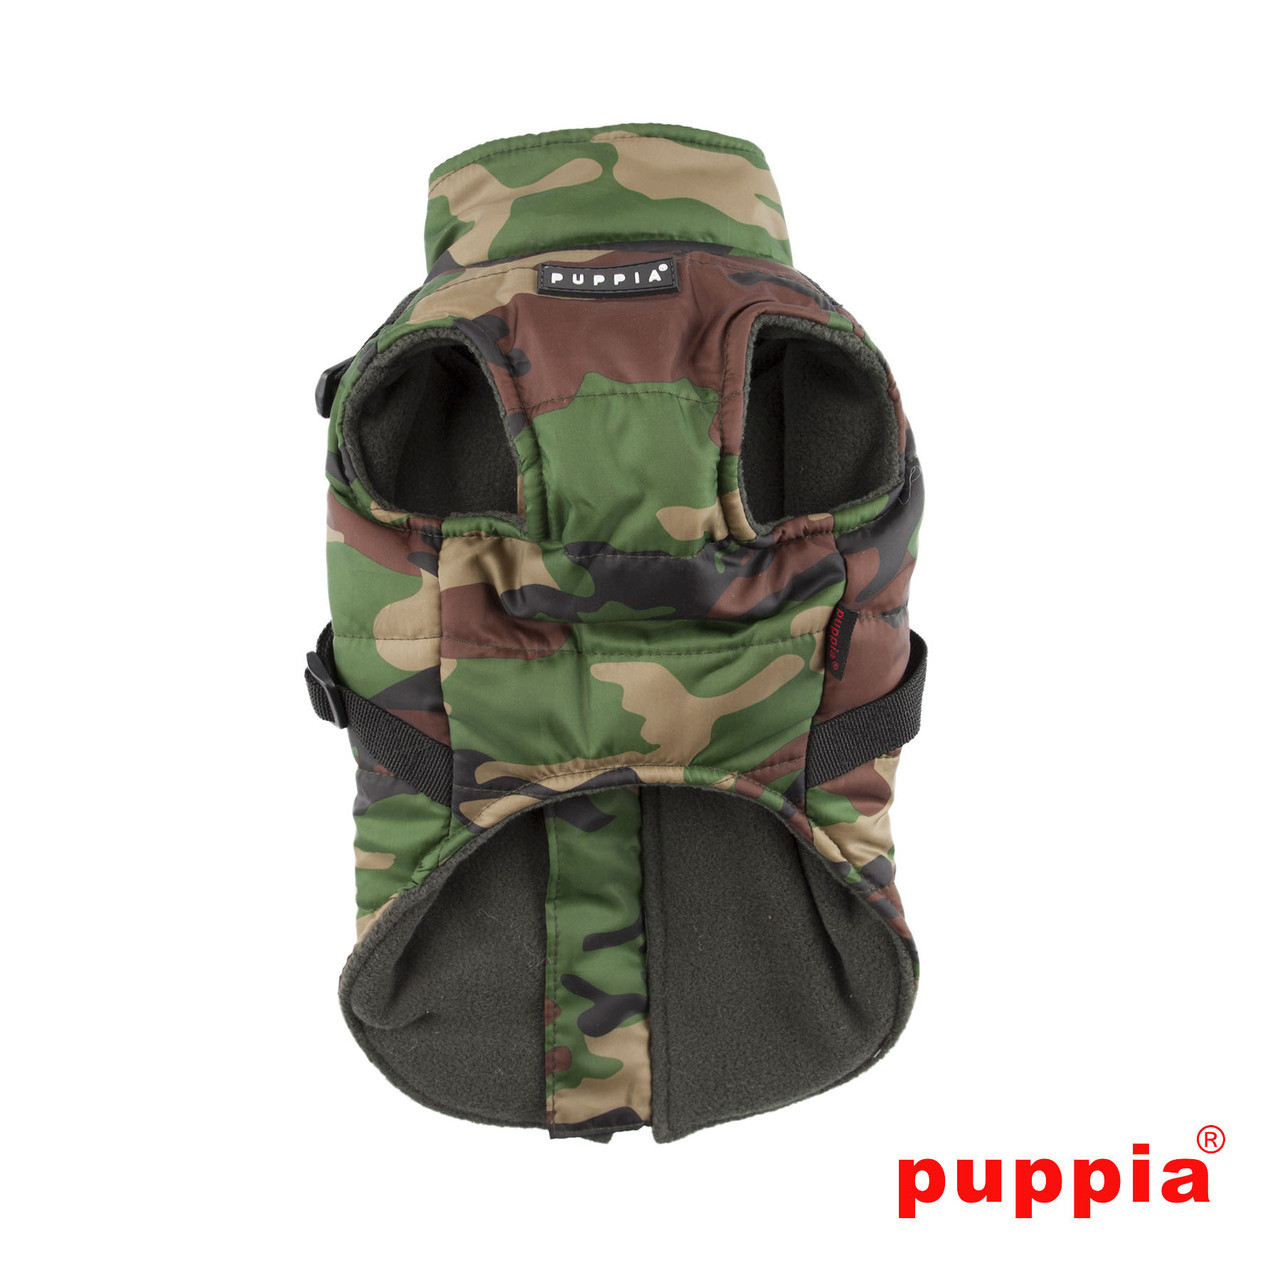 Puppia Mountaineer Coat in camo back side